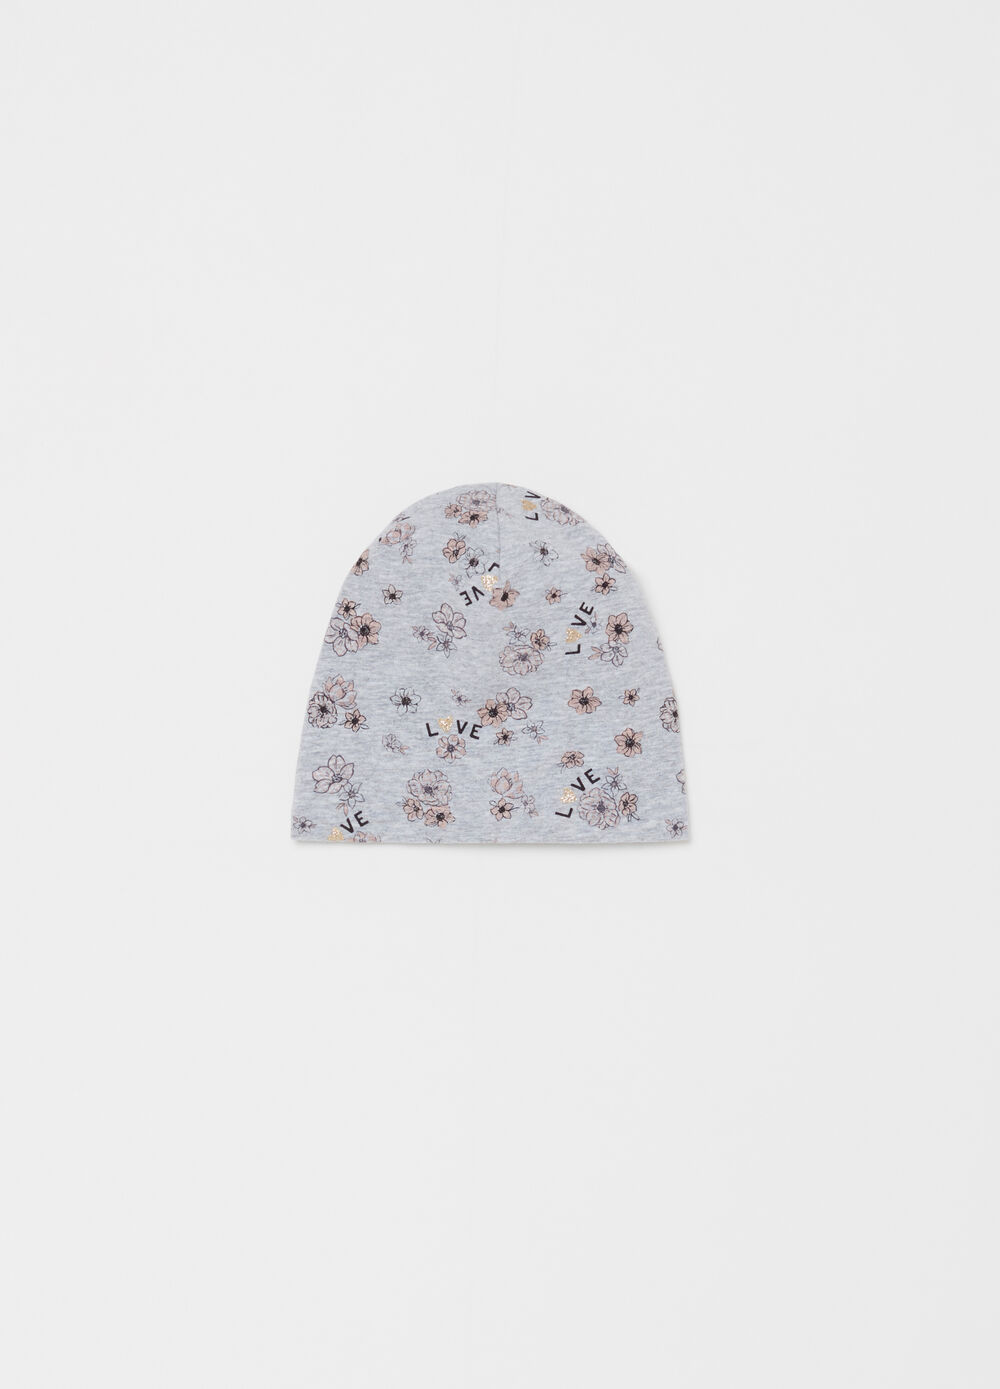 Cotton jersey beret with floral pattern